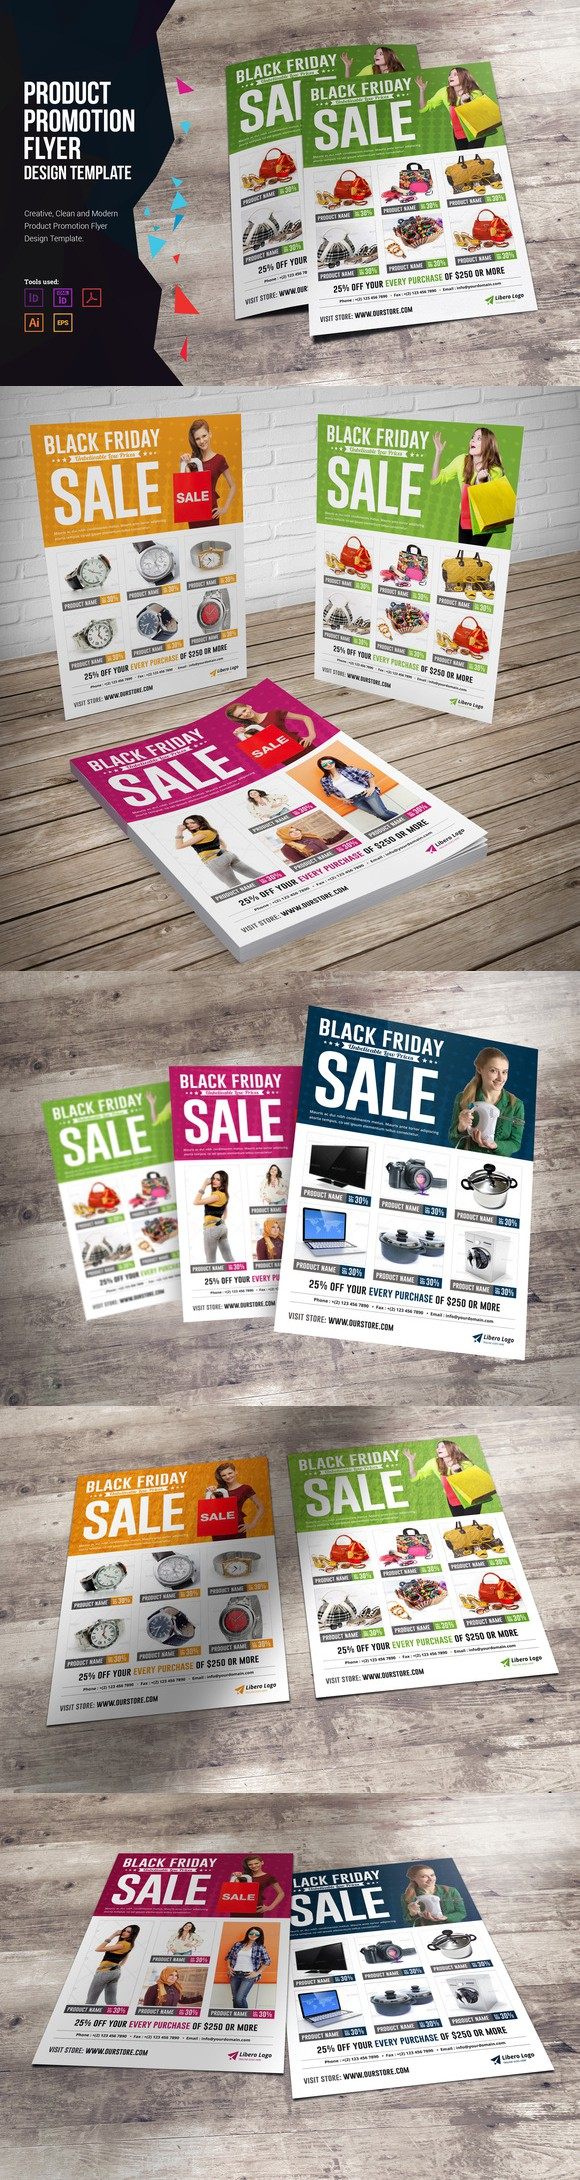 Product Promotion Flyer Design. Flyer Templates. $6.00 | Promotional ...